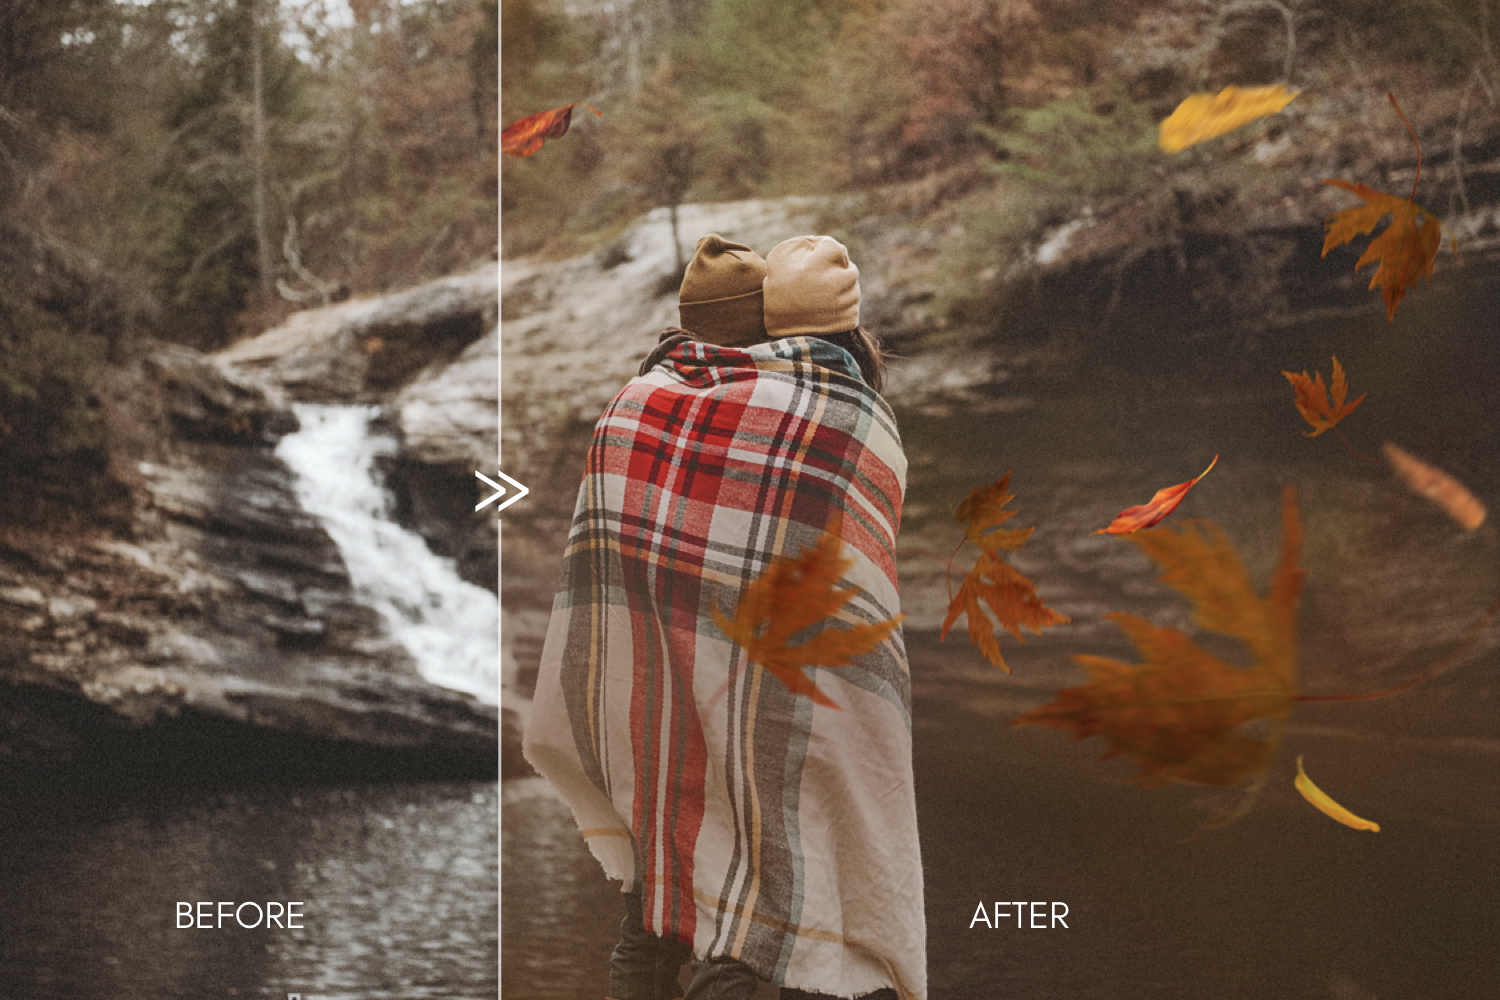 70 Natural Falling Autumn Leaves Photoshop Overlays - autumn falling leaves photoshop photography overlays 5 -